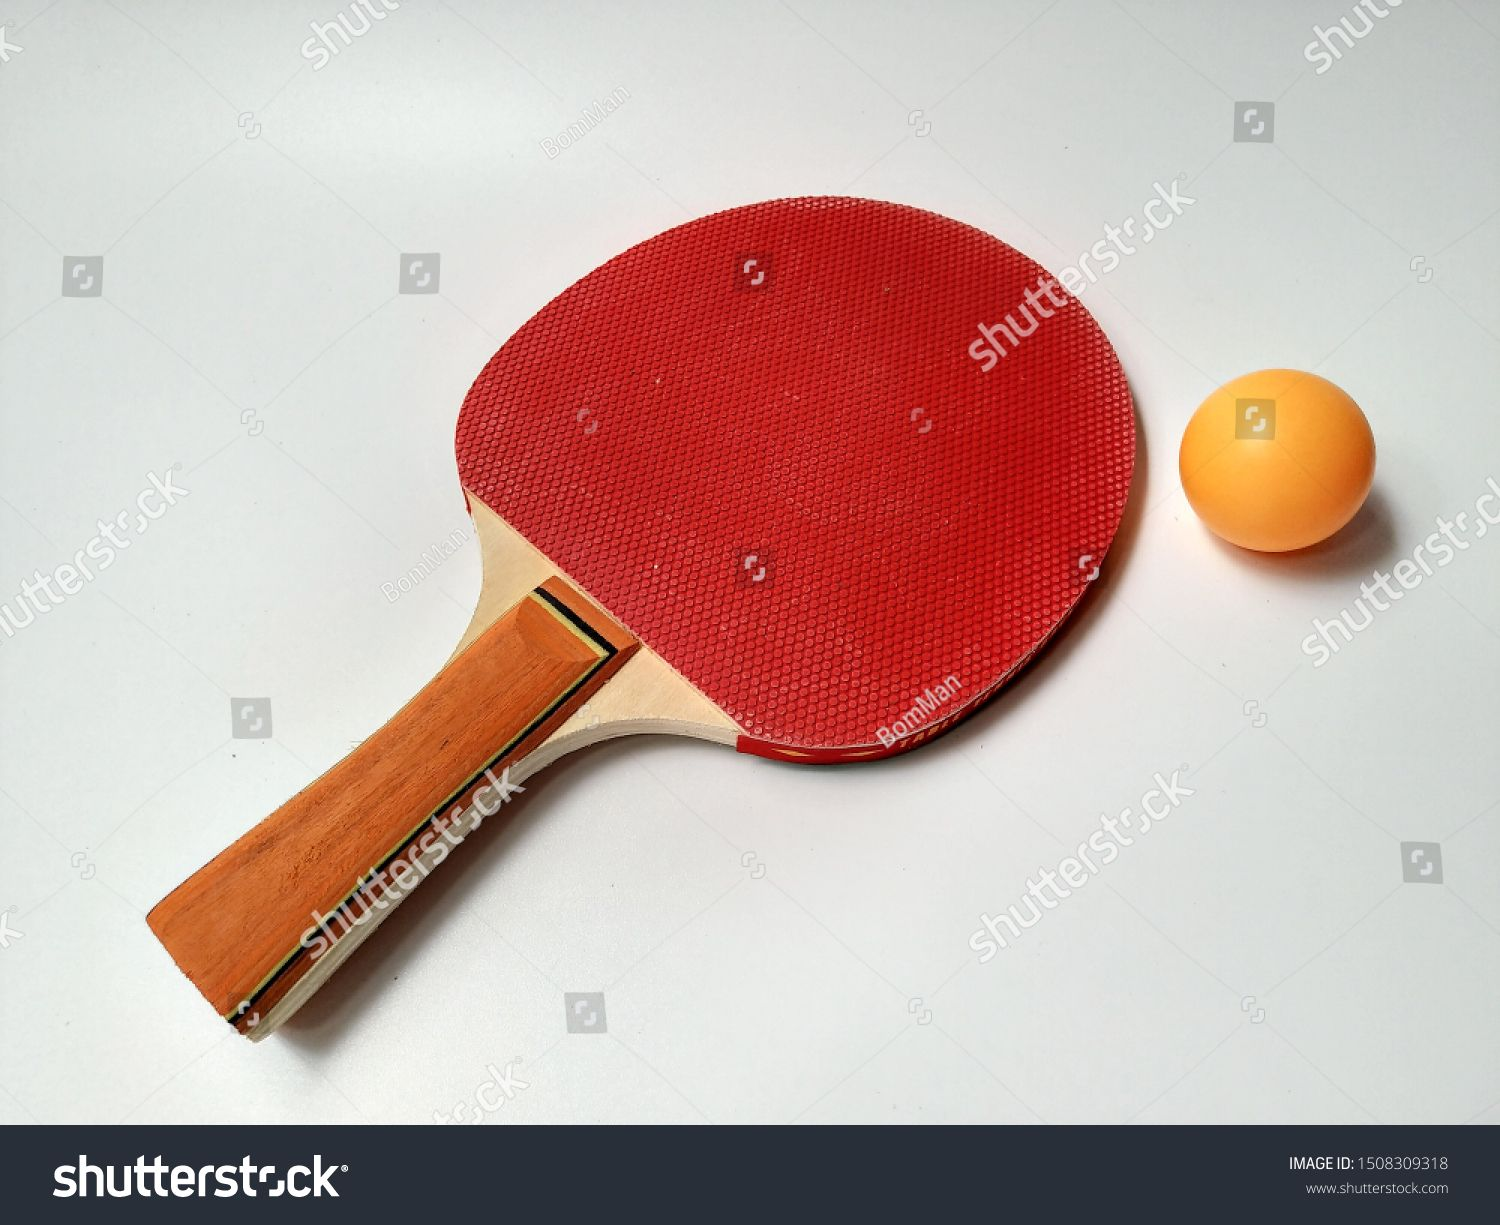 Racket And Ball For Table Tennis Ping Pong Vector Illustration Table Tennis Ping Pong Ping